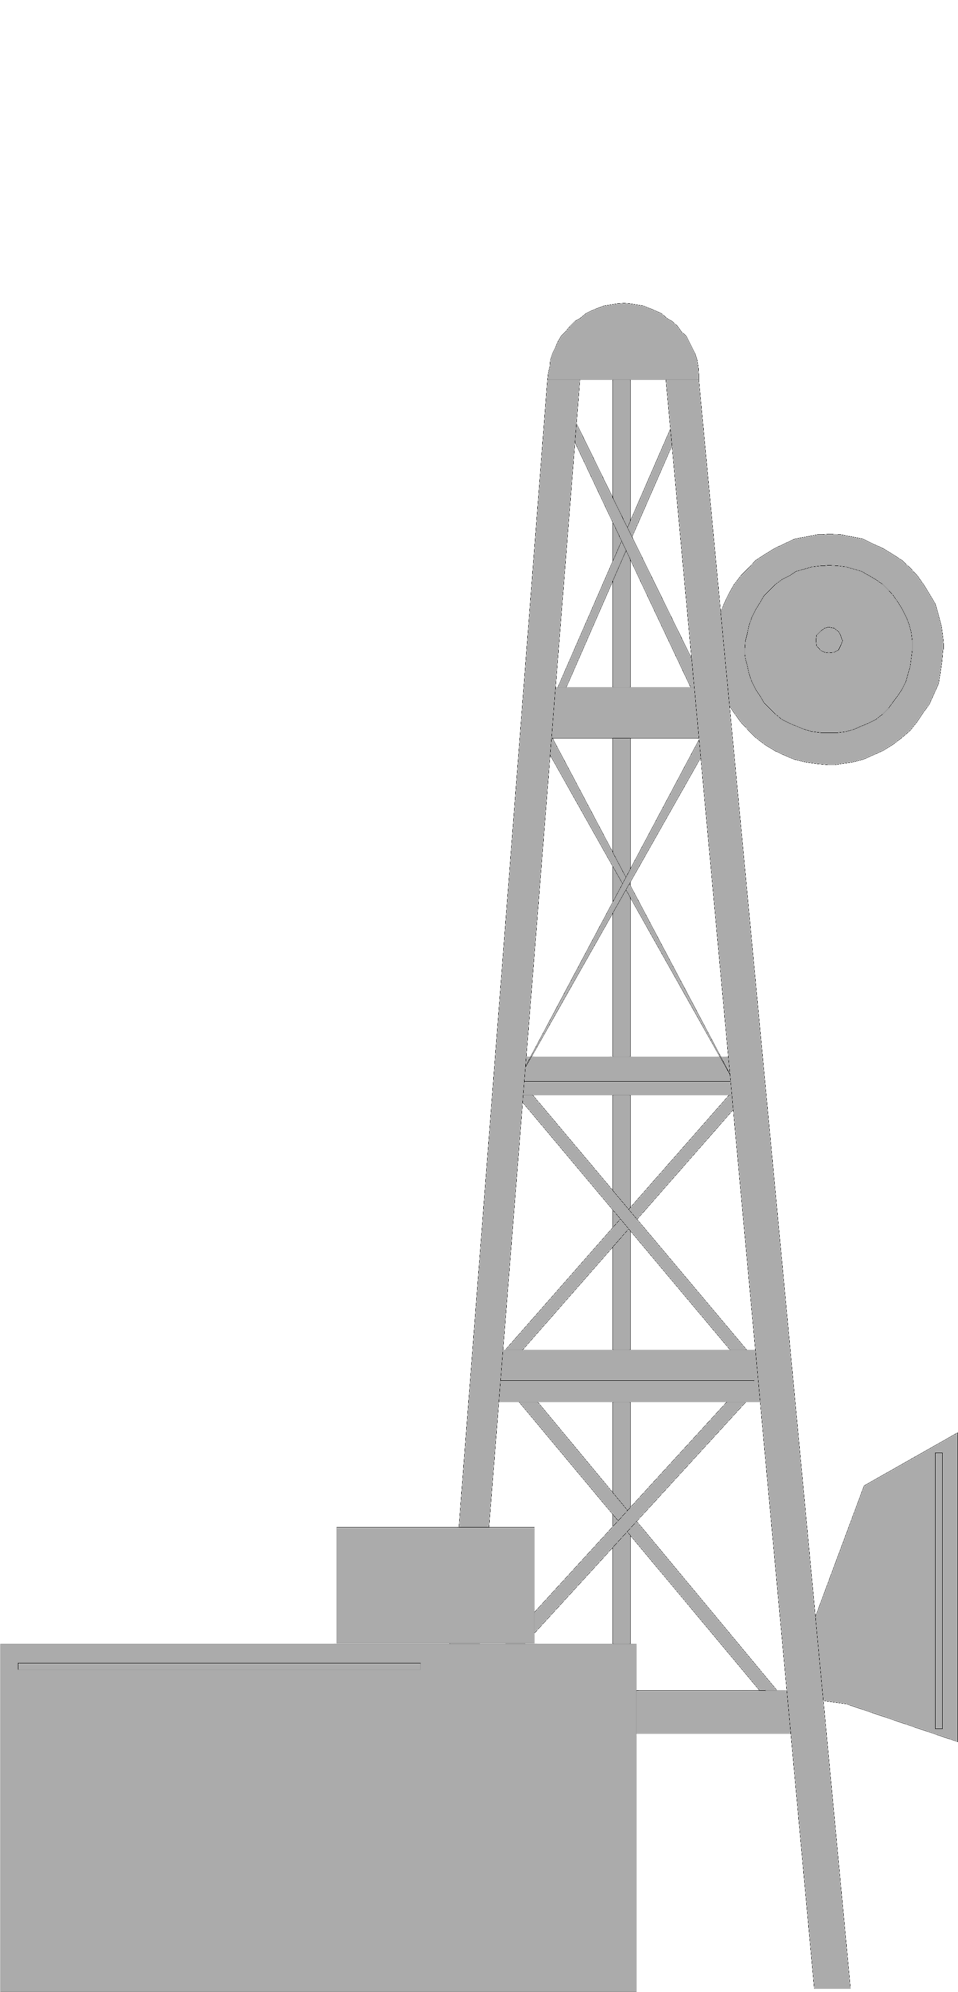 Tower clipart technological. Microwave free stock photo